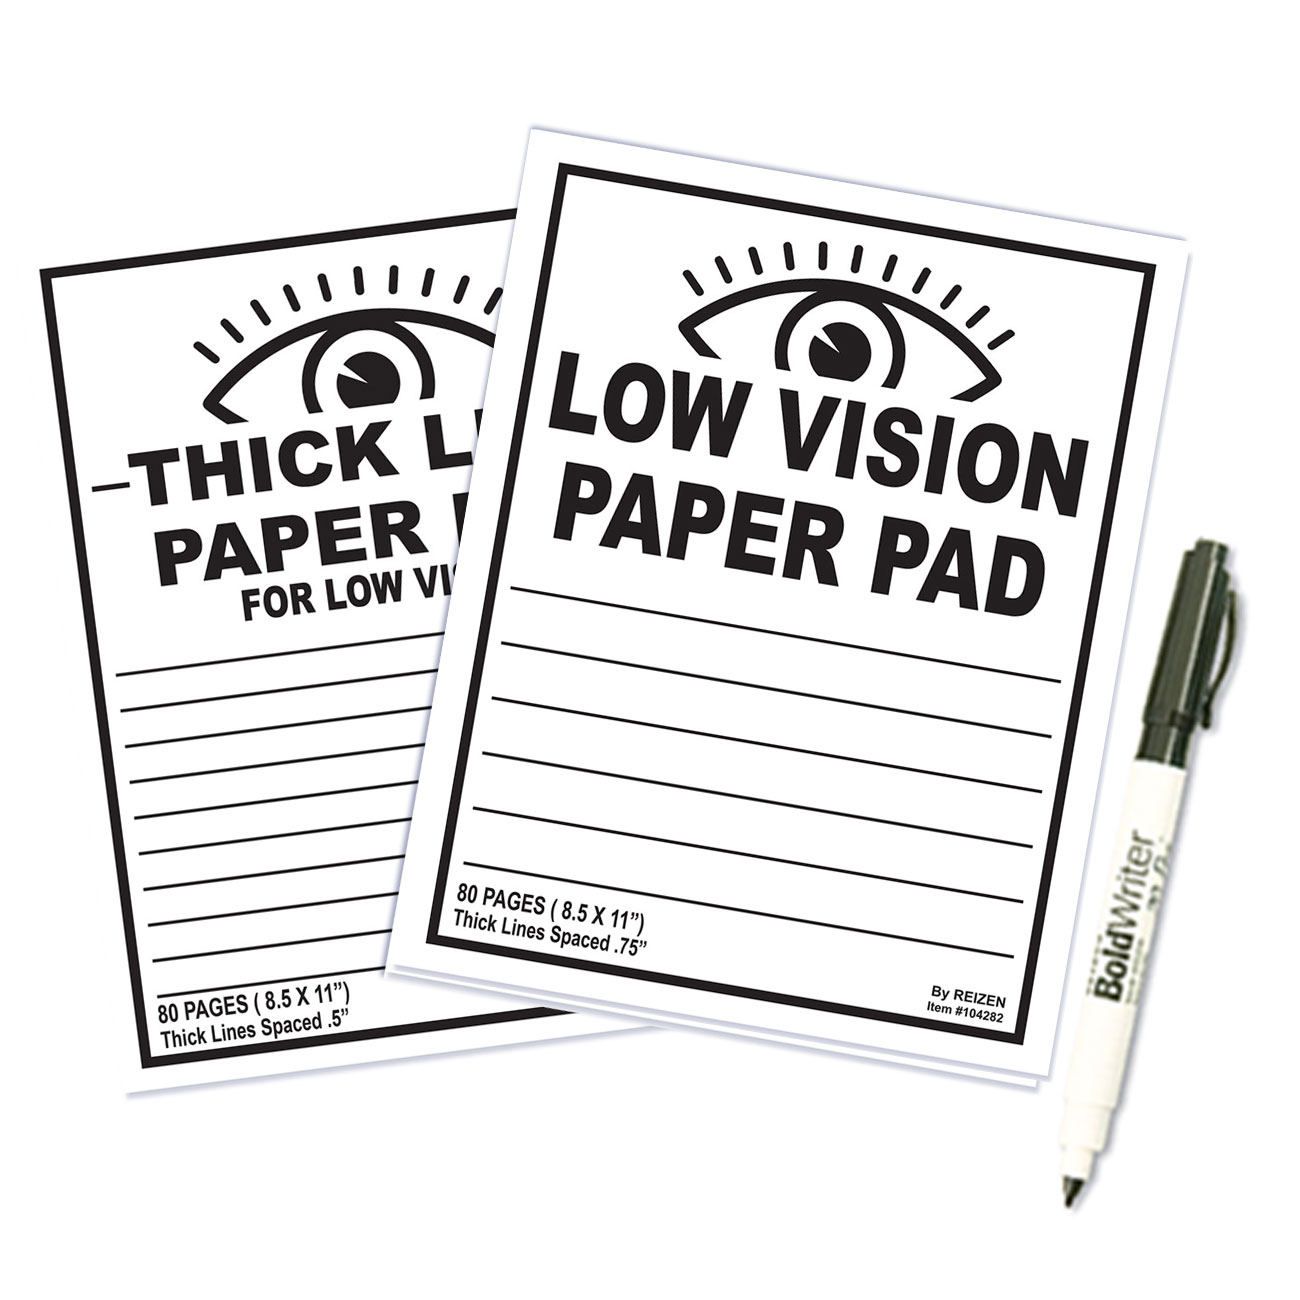 Thick Line Paper Notebook and Low Vision Paper Notebook - Set of 2